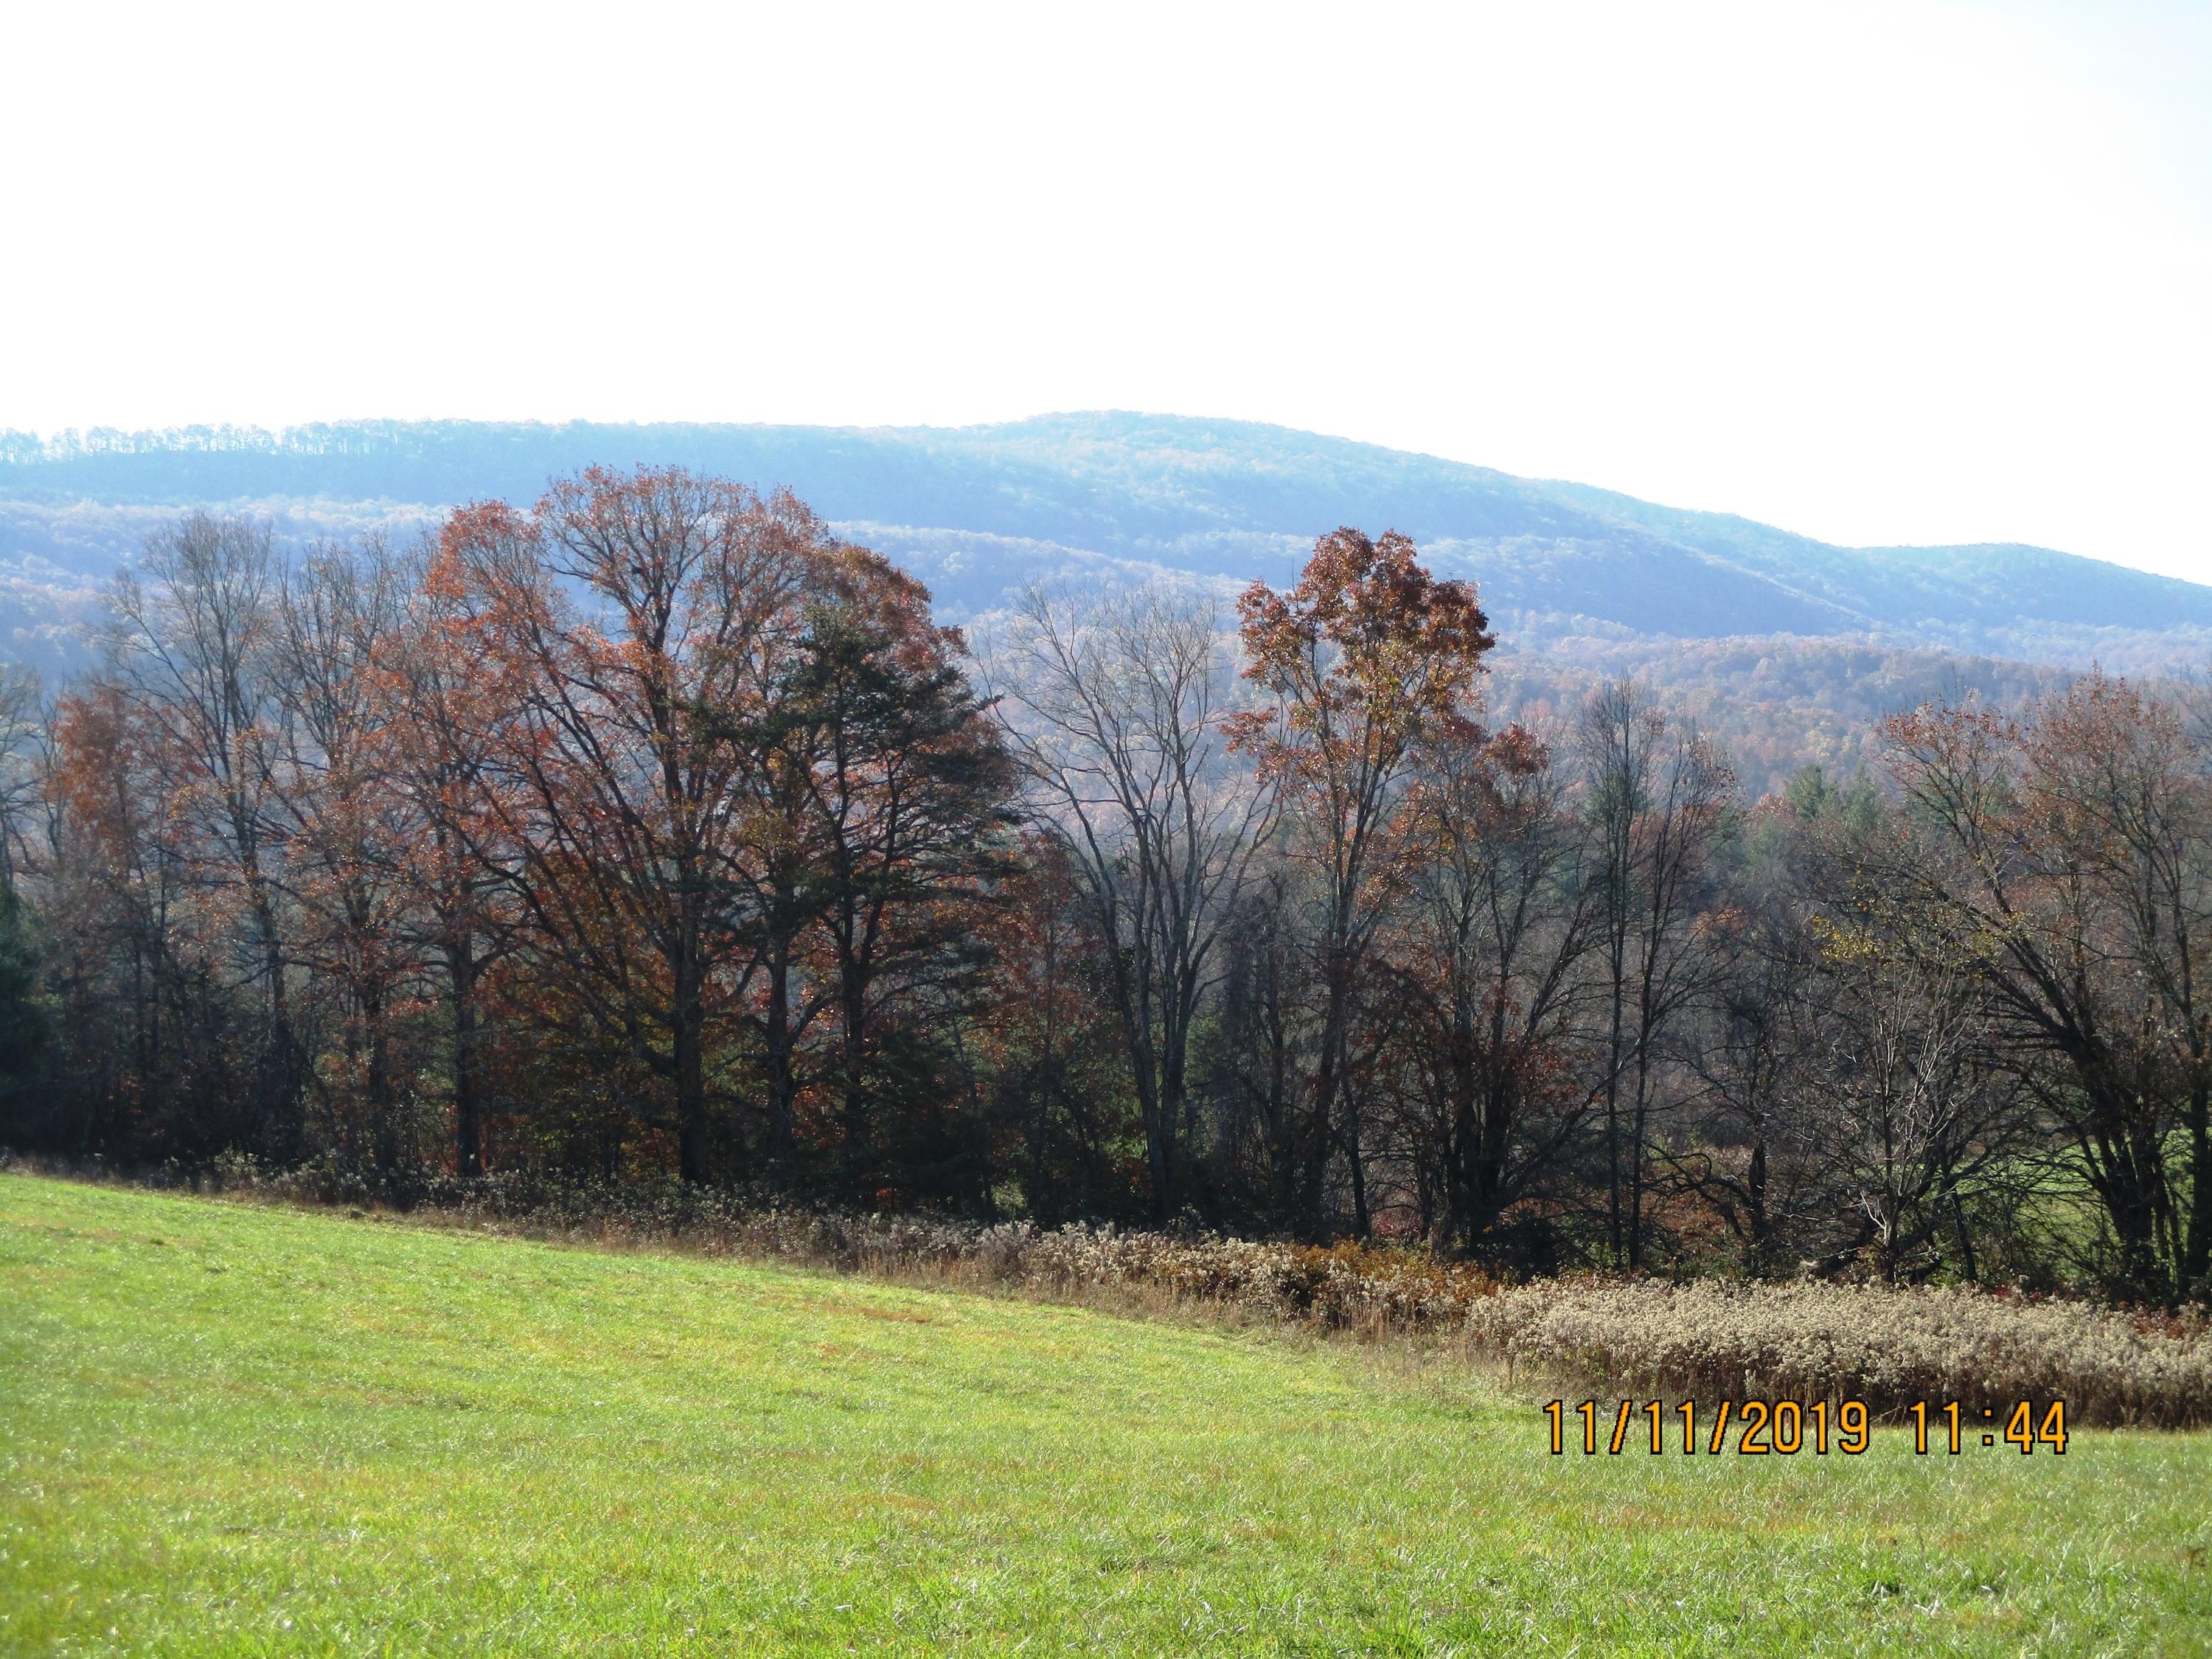 Lot 10 Houston, Crossville, Tennessee, United States 38555, ,Lots & Acreage,For Sale,Houston,1100634